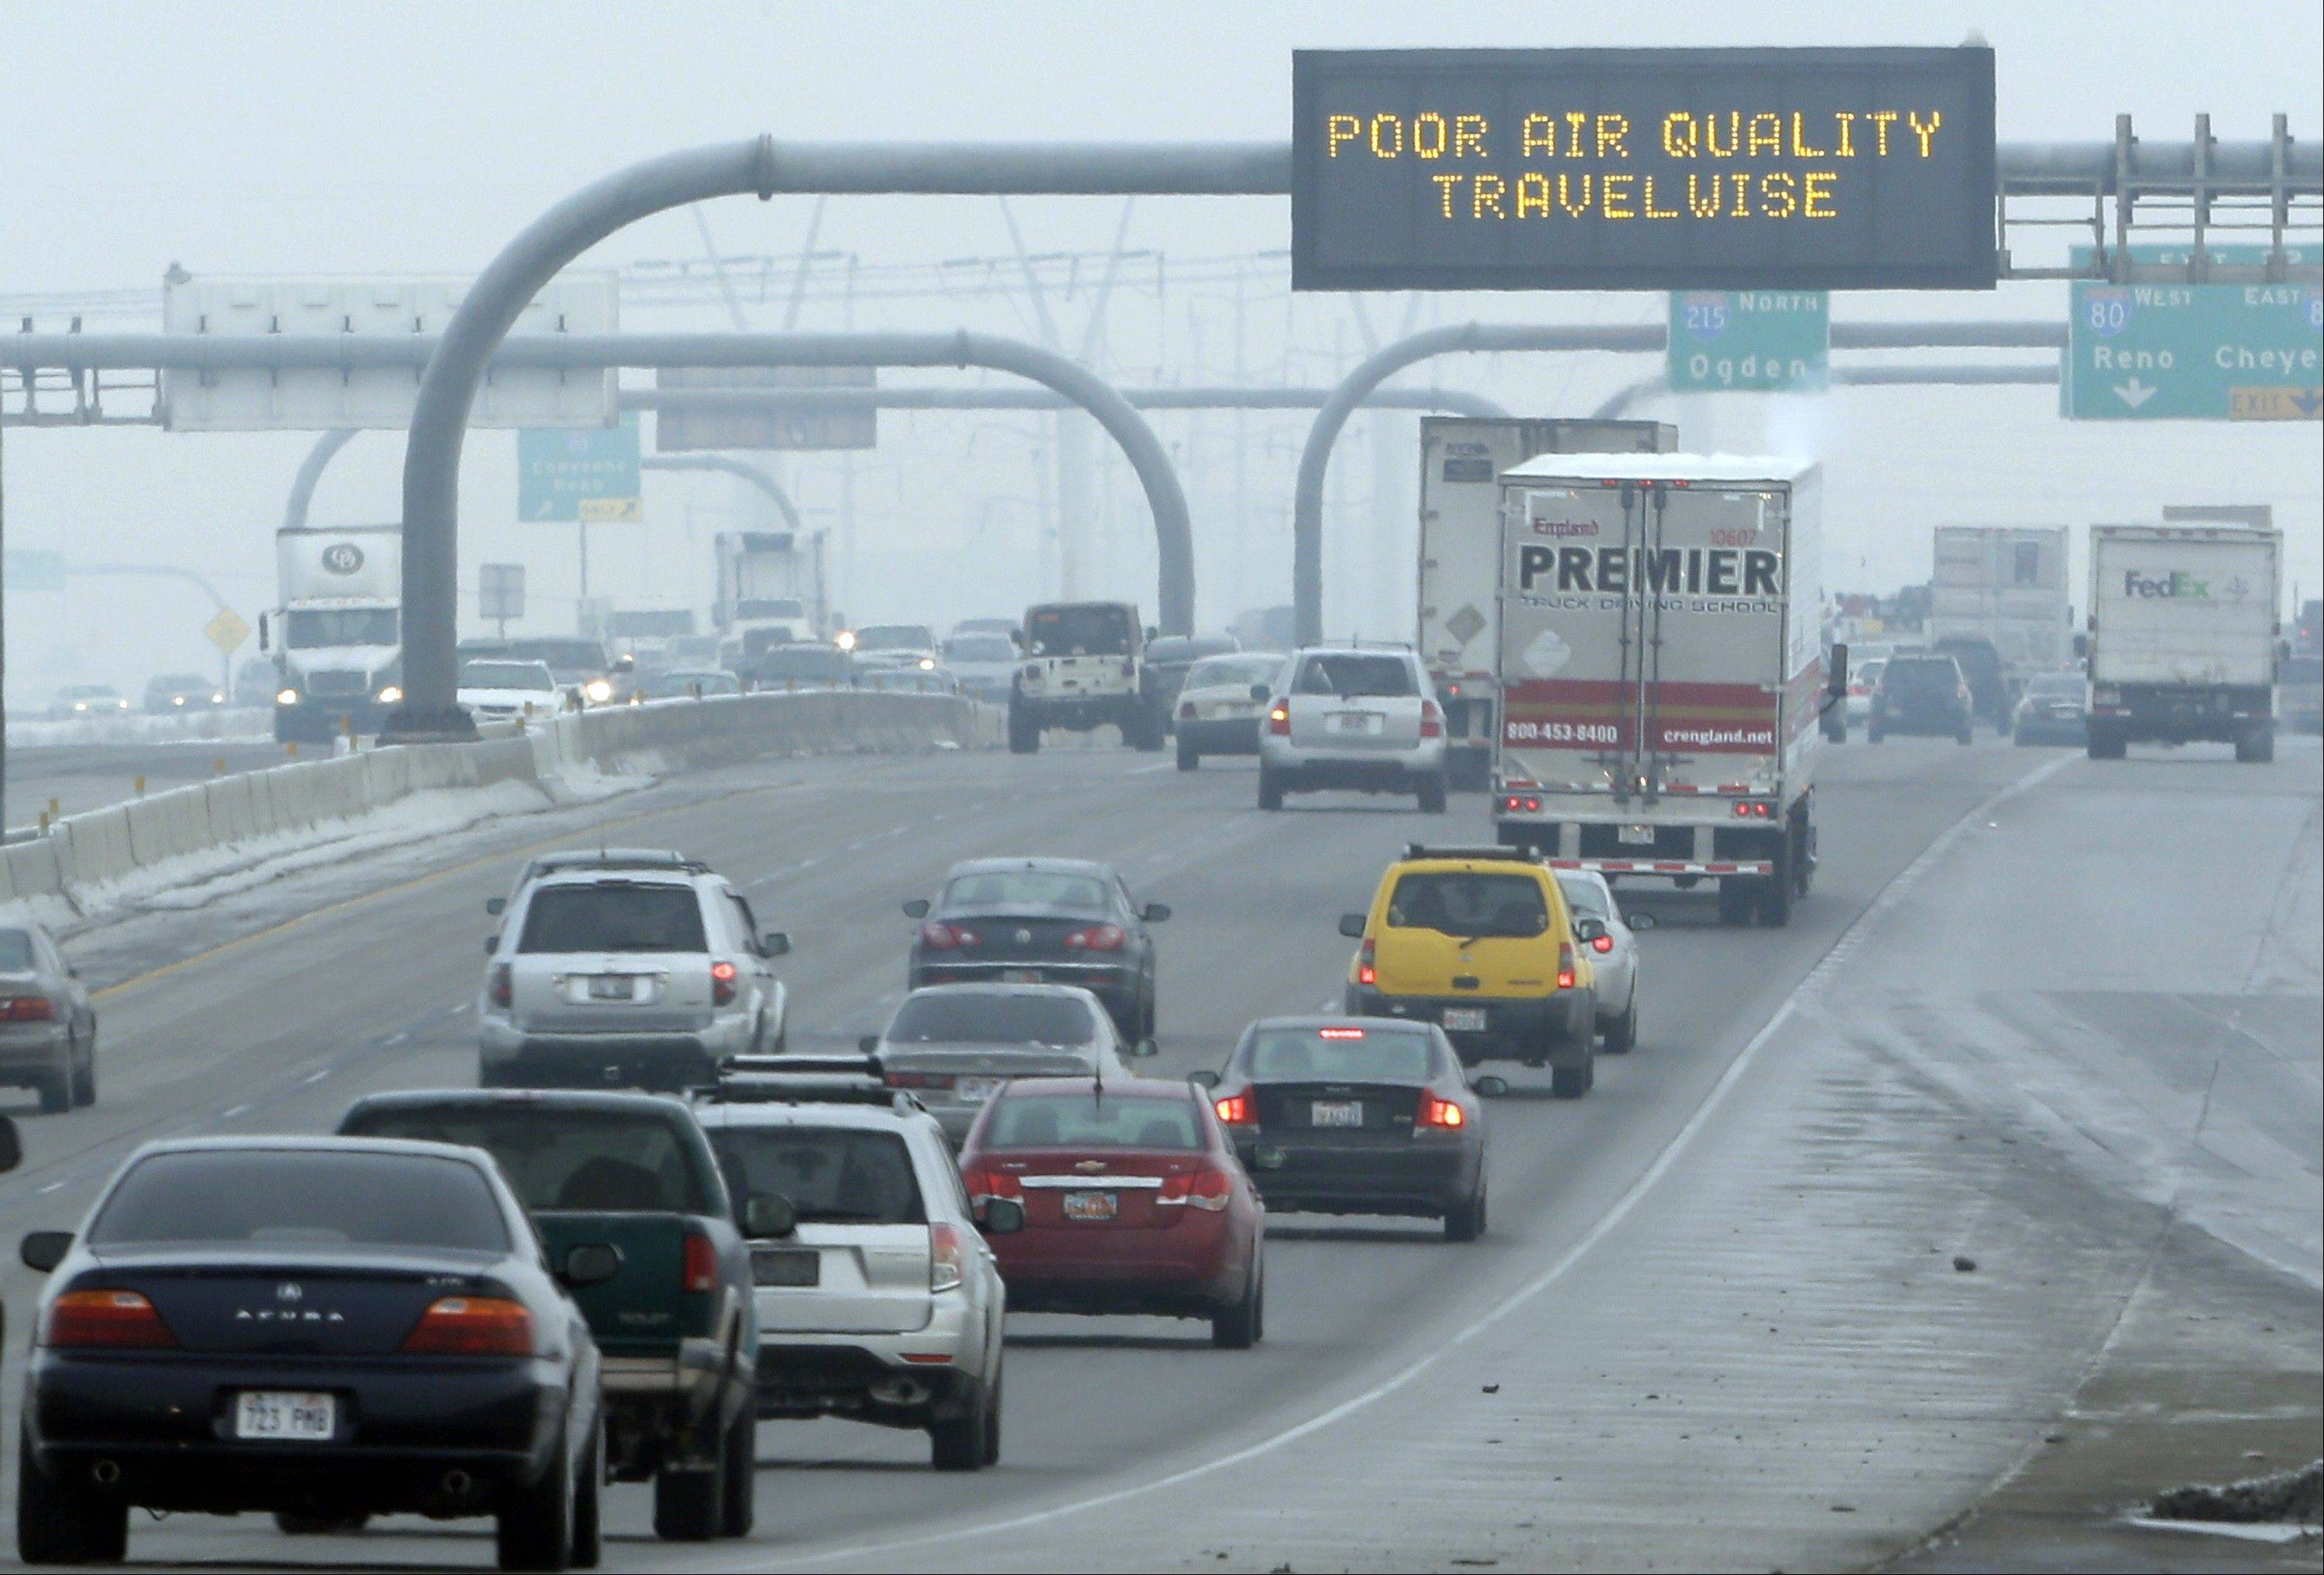 This Jan. 23, 2013, file photo shows a poor air quality sign is posted over a highway in Salt Lake City. A new government report released Jan. 13, 2014, says energy-related carbon dioxide pollution increased slightly in 2013 after declining for several years in a row.